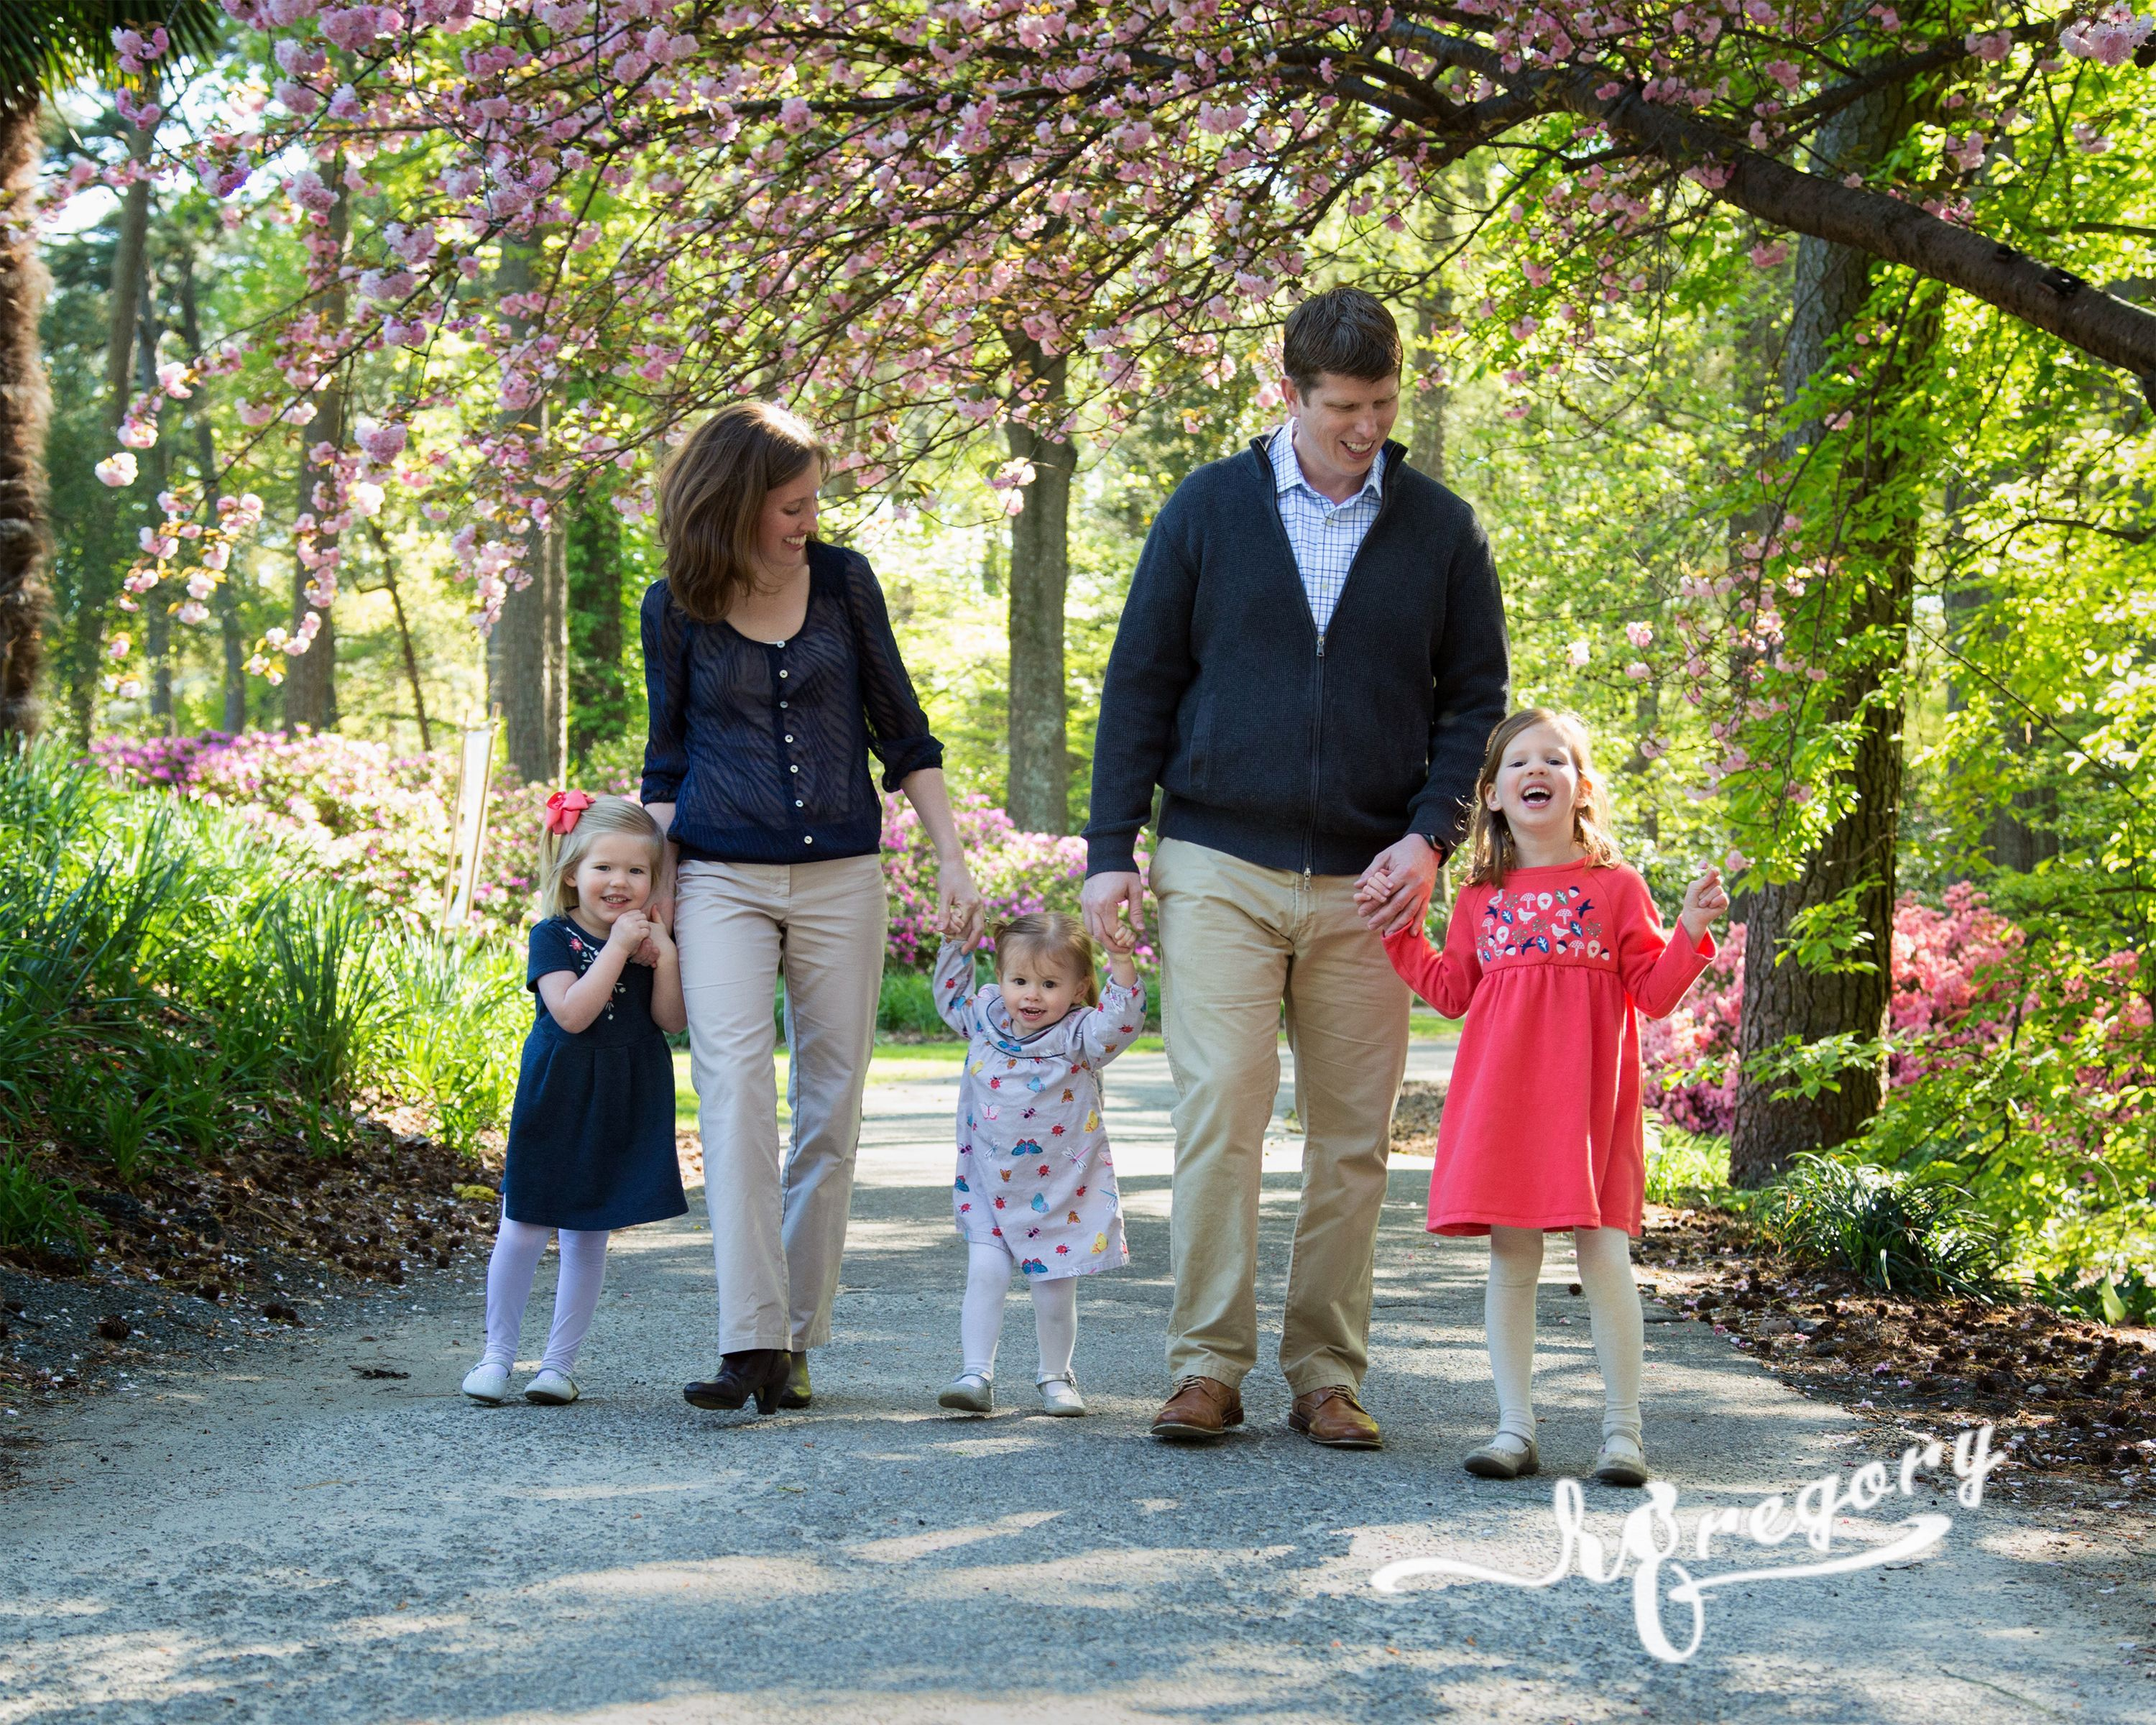 Mabrey family photo walking on path